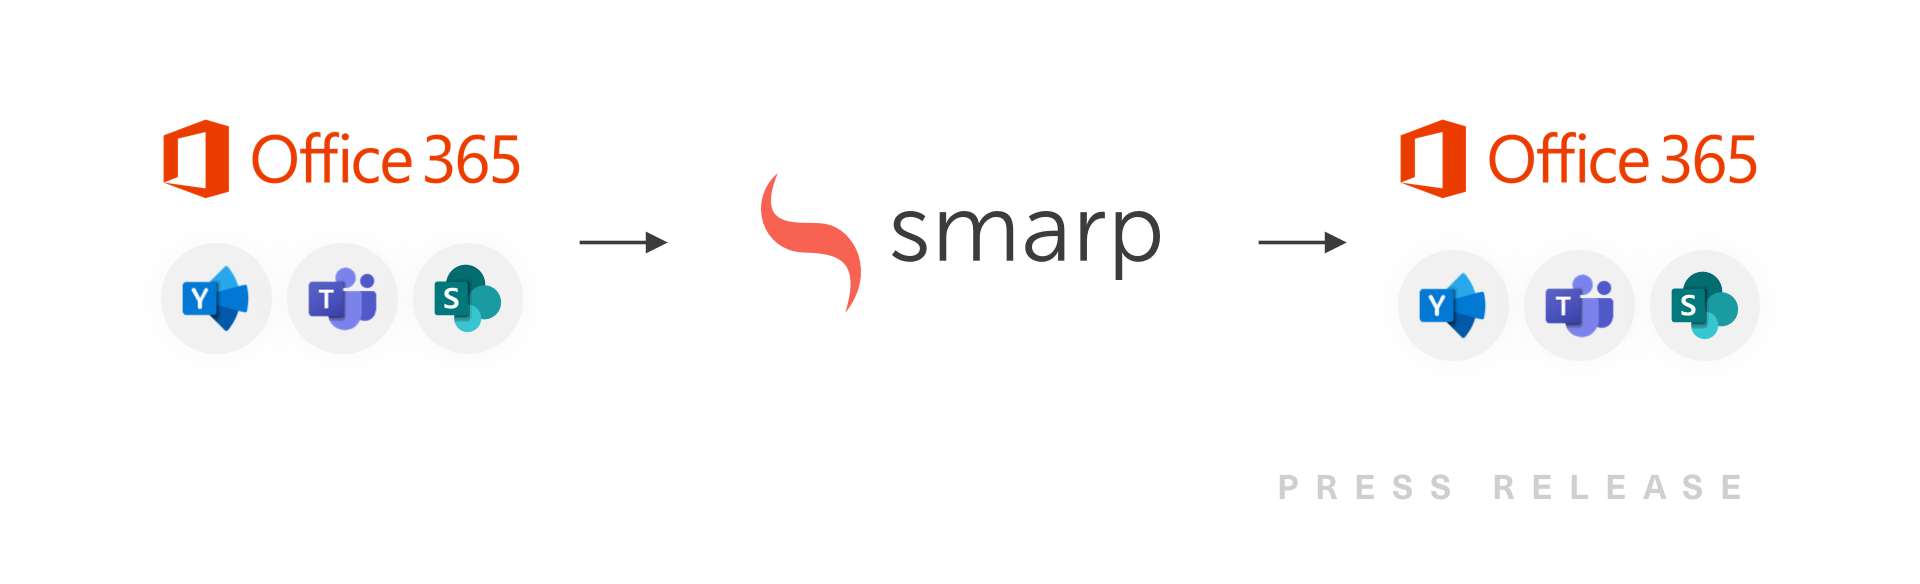 Smarp-Announces-Expansion-of-Microsoft-Office-365 Integration-2